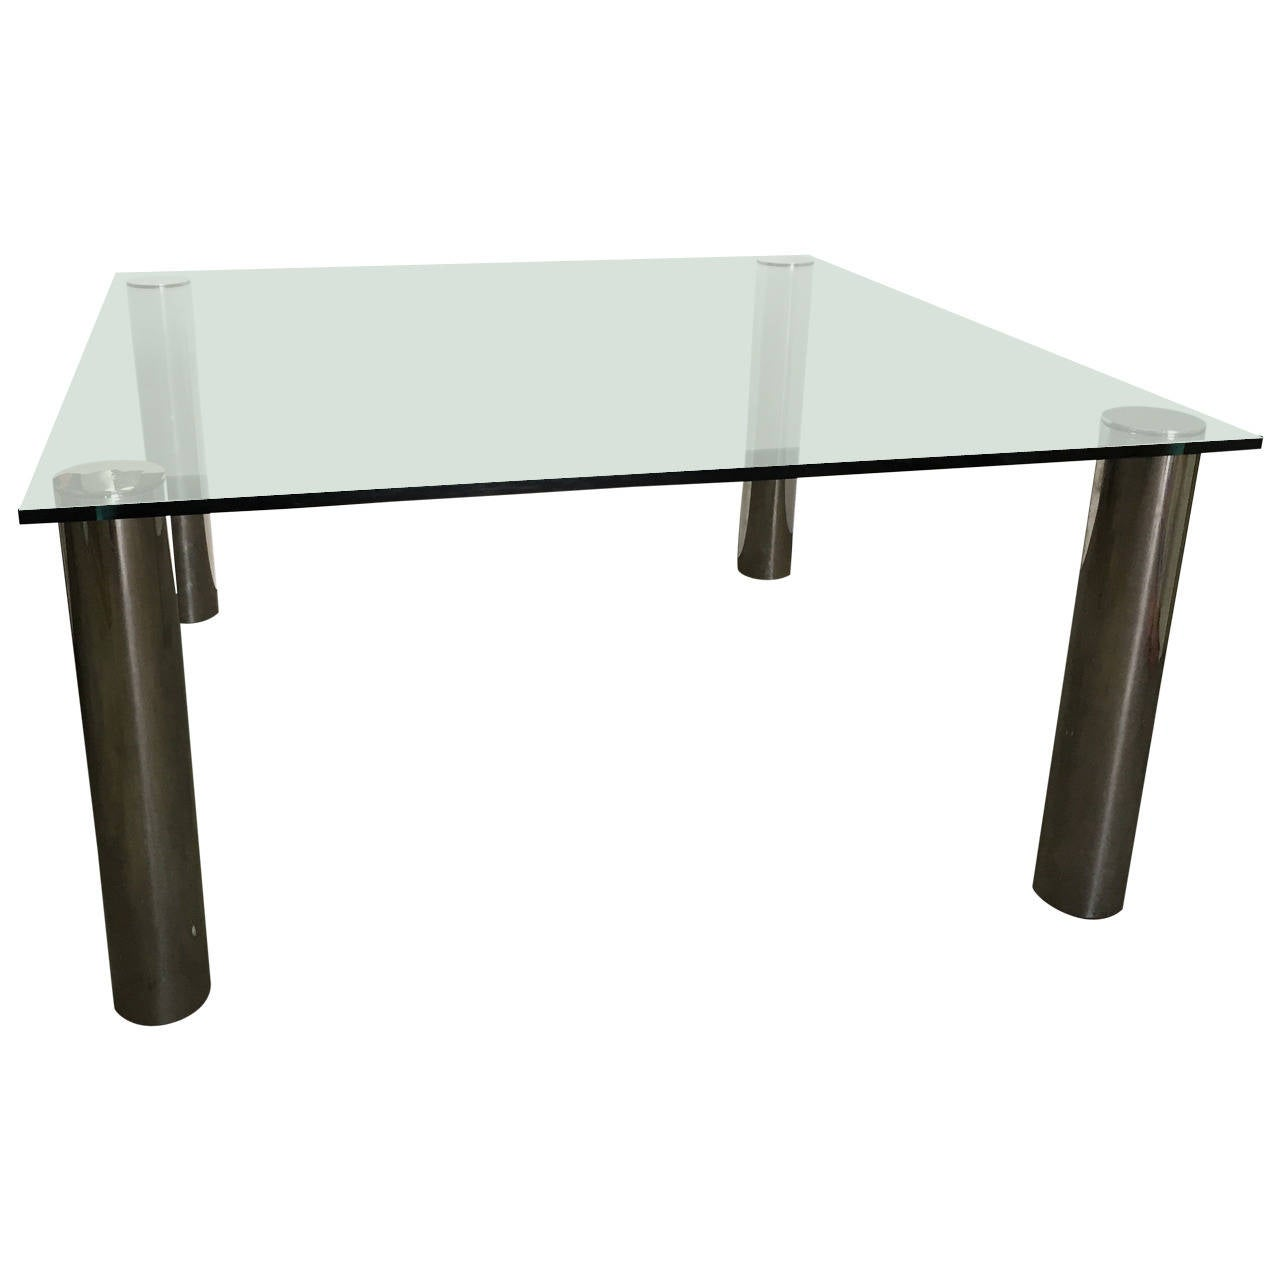 Pace Oversized Square Chrome And Glass Dining Table For Sale At 1stdibs